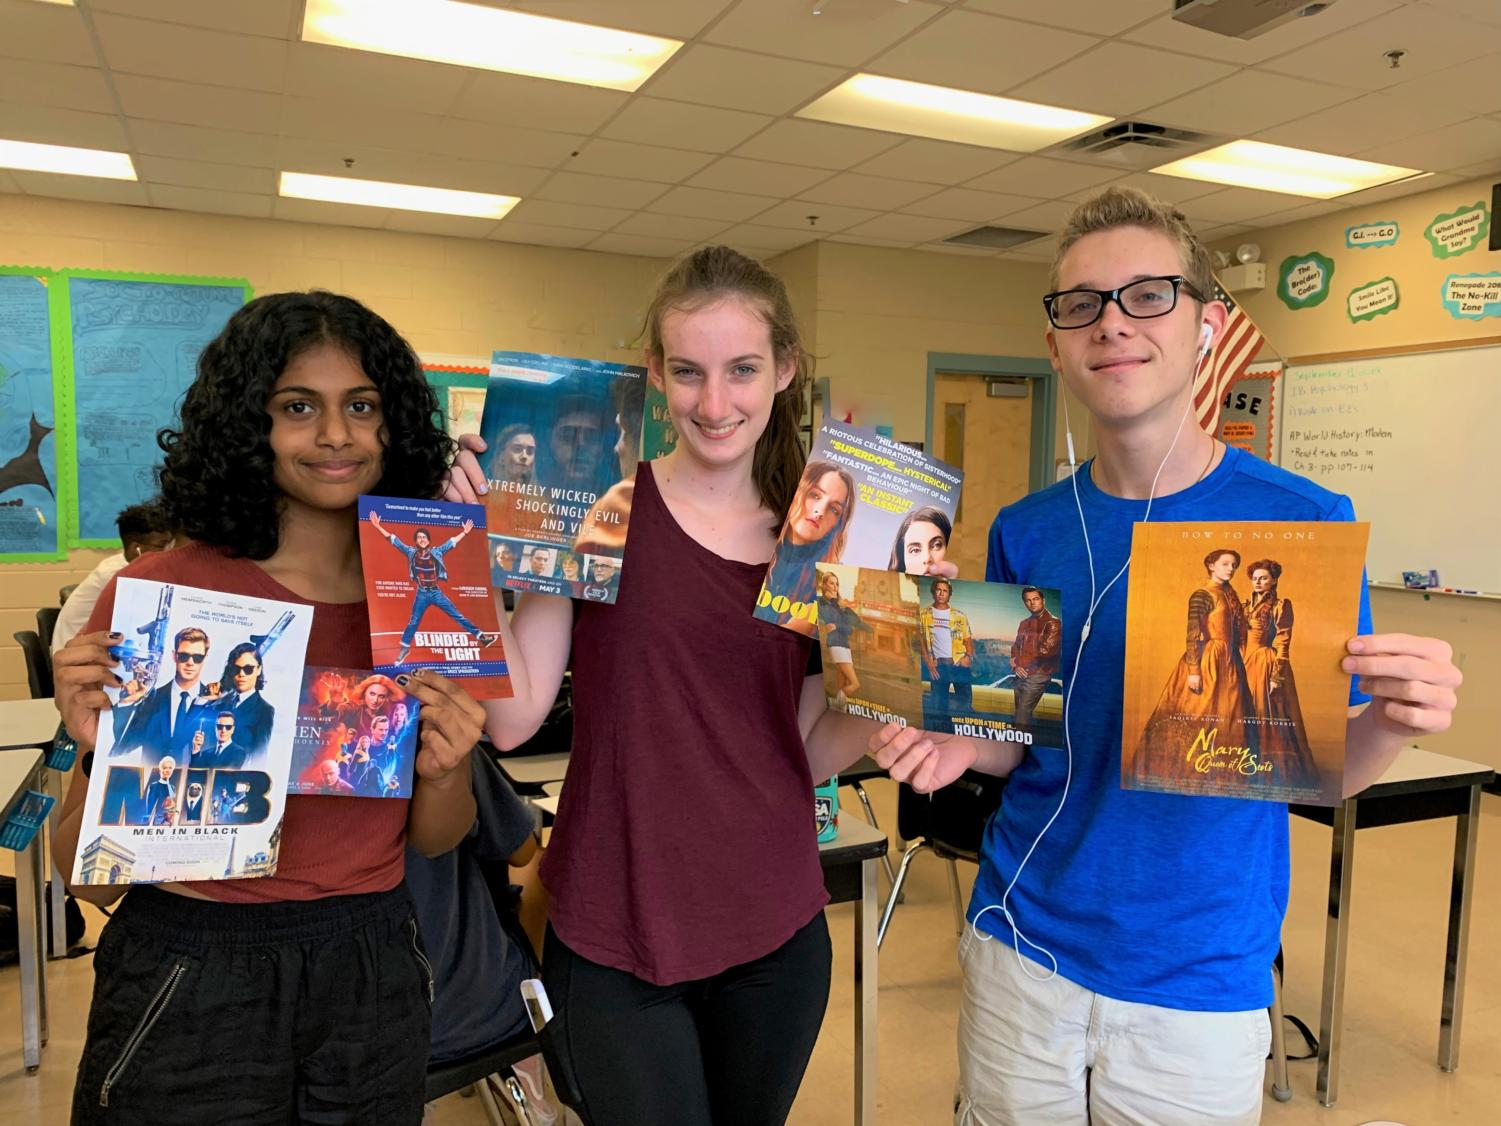 Seminole High's students show their reactions to the newest movies of 2019.